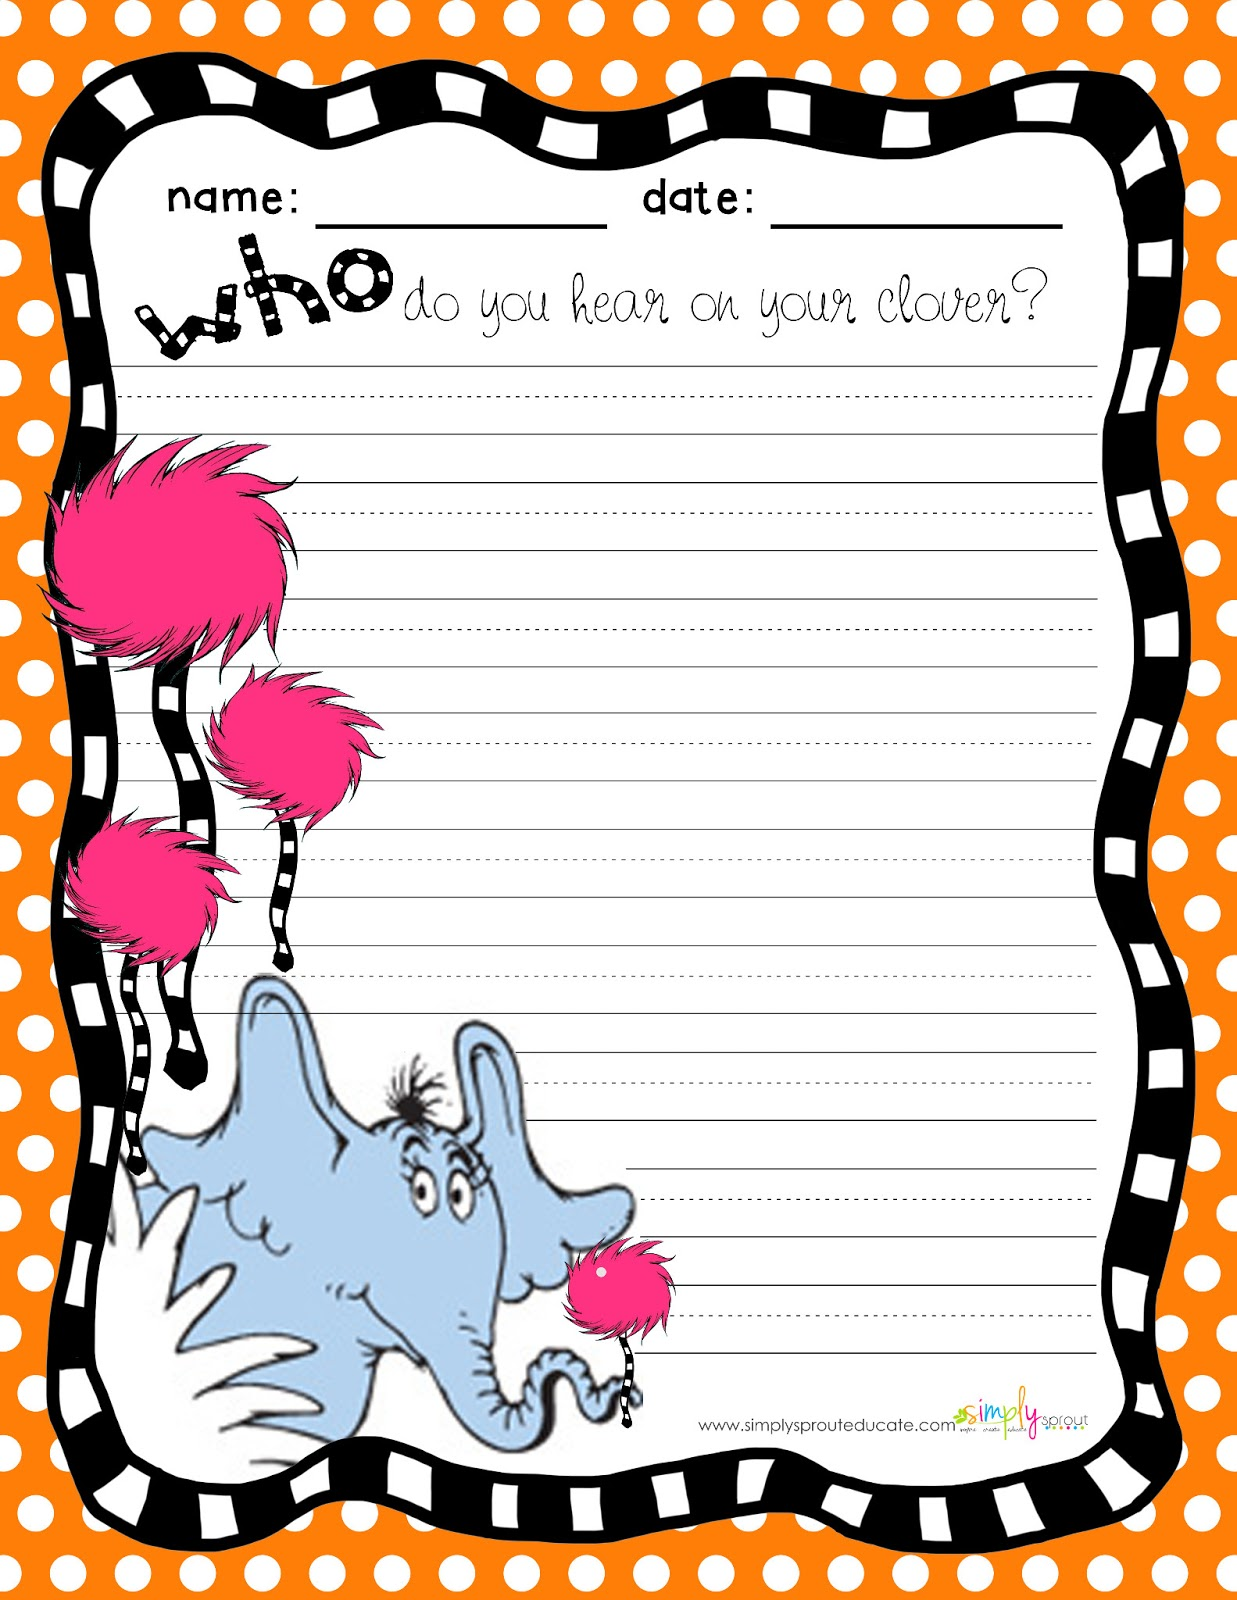 kindergarten lined writing paper Free, printable lined writing paper for kids over 1,500 ela worksheet lesson activities for class or home use click to get started.